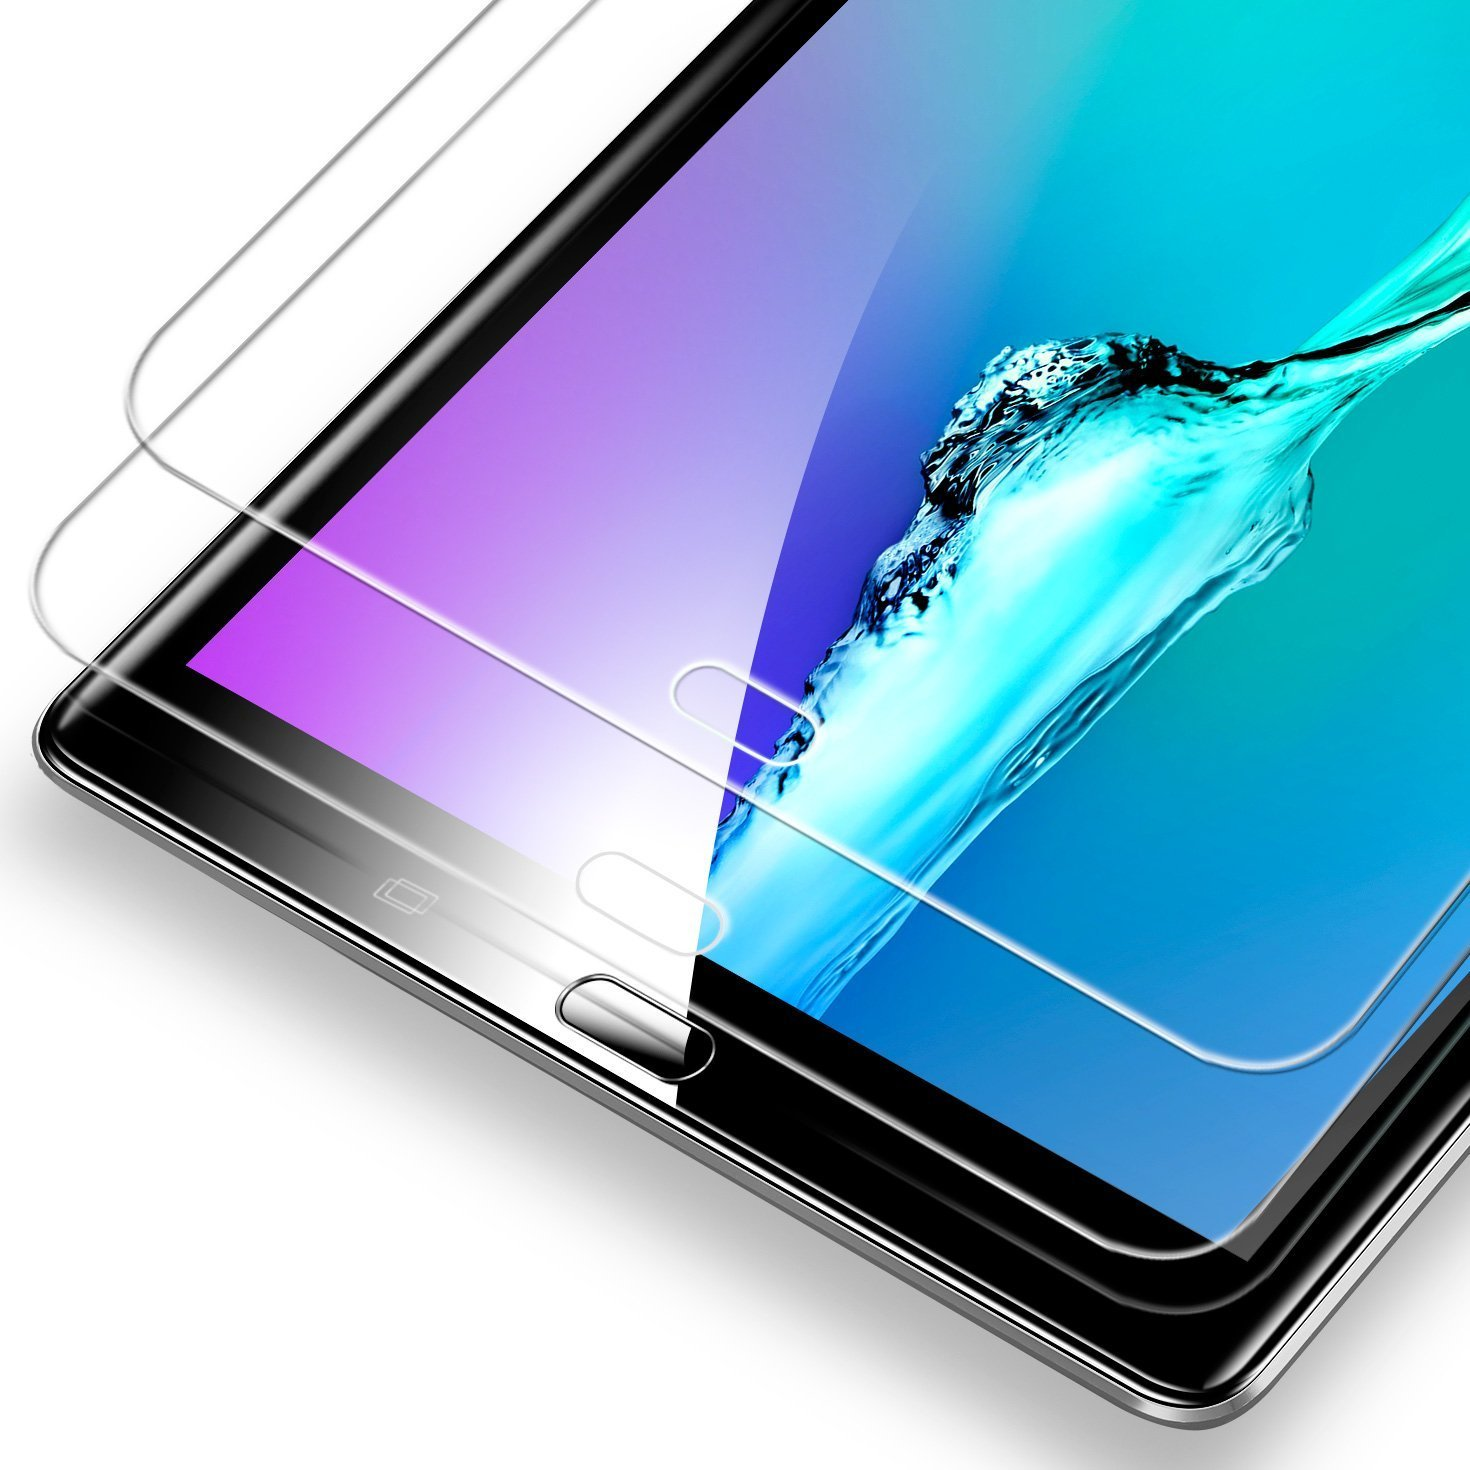 [2-Pack] Samsung Galaxy Tab A 10.1 Screen Protector, ESR Premium Tempered Glass Screen Protector for Samsung Galaxy Tab A 10.1 (SM-T580 / SM-T581 / SM-T585)